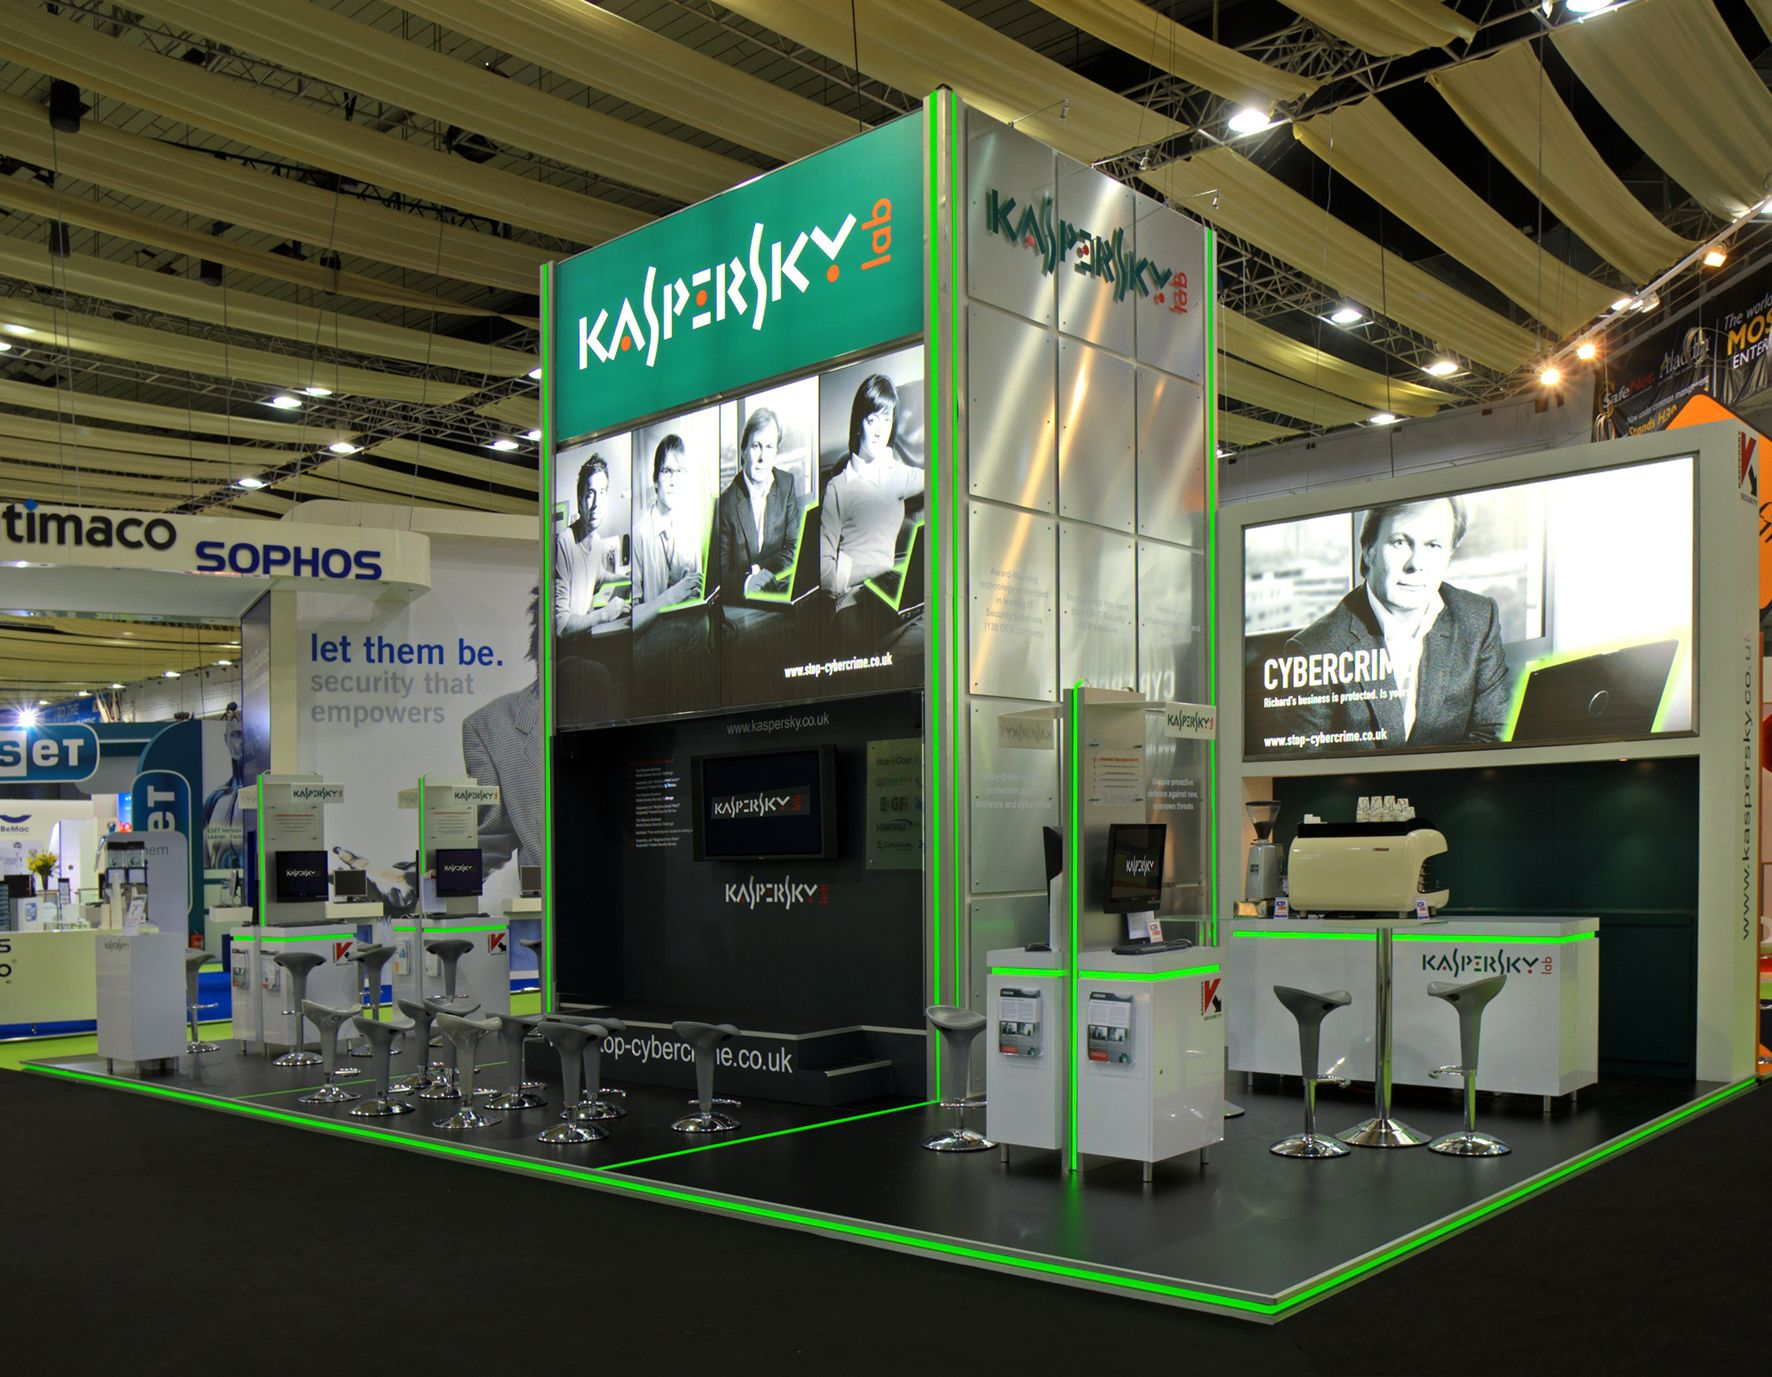 Exhibition Stand Lighting Uk : Pin by light tape uk on light tape exhibitions lighting